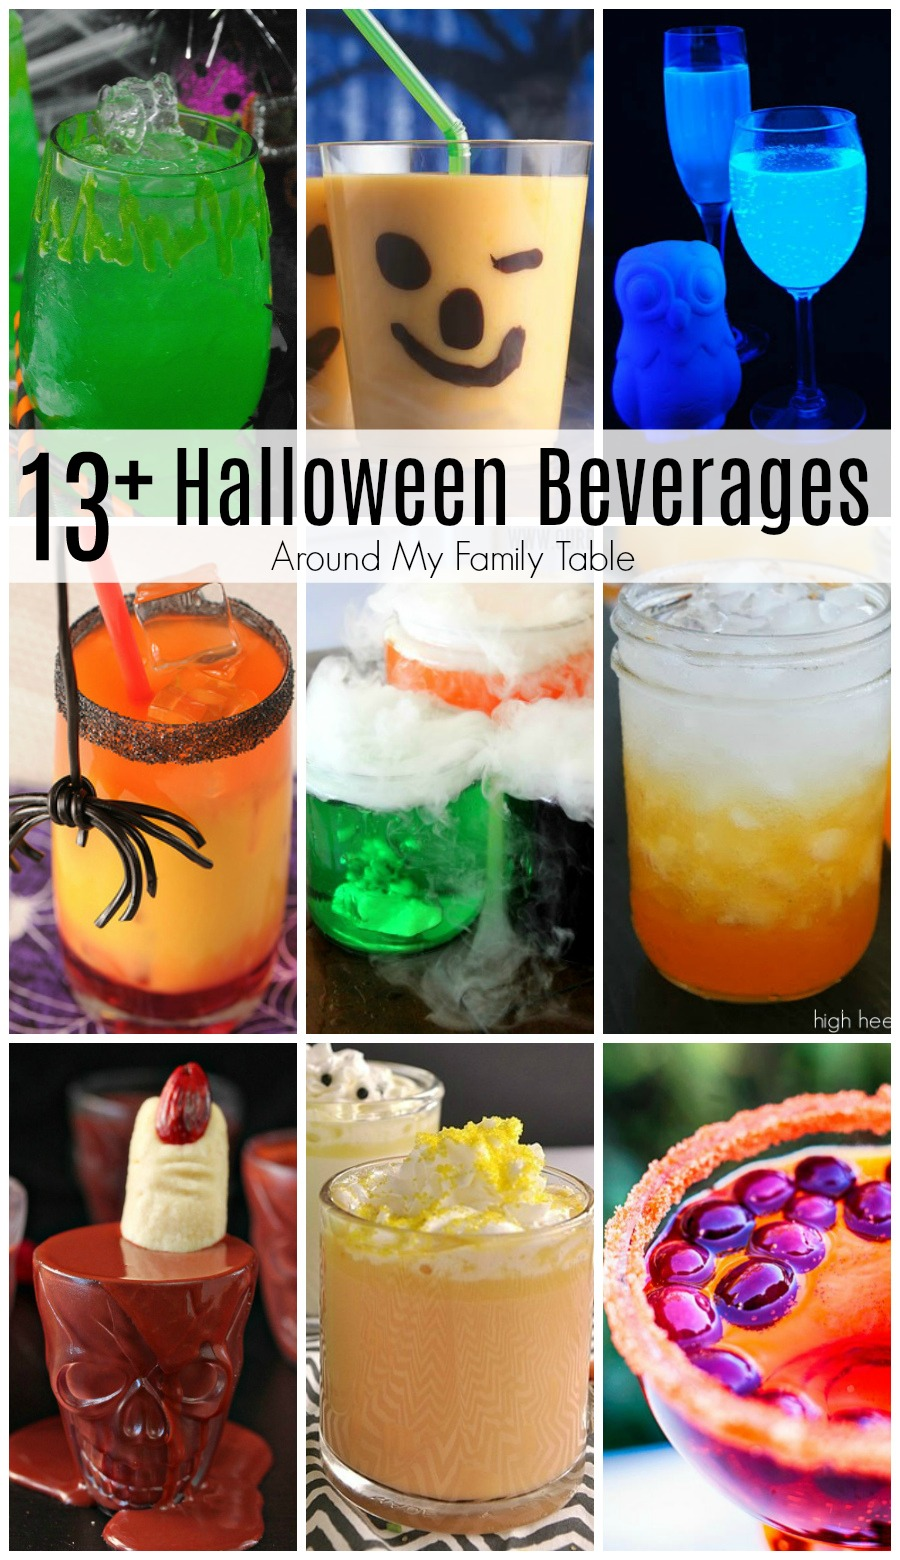 Halloween is almost here, and it's time to celebrate with over 13 Halloween Beverage Recipesthat are perfect to punch up your party!